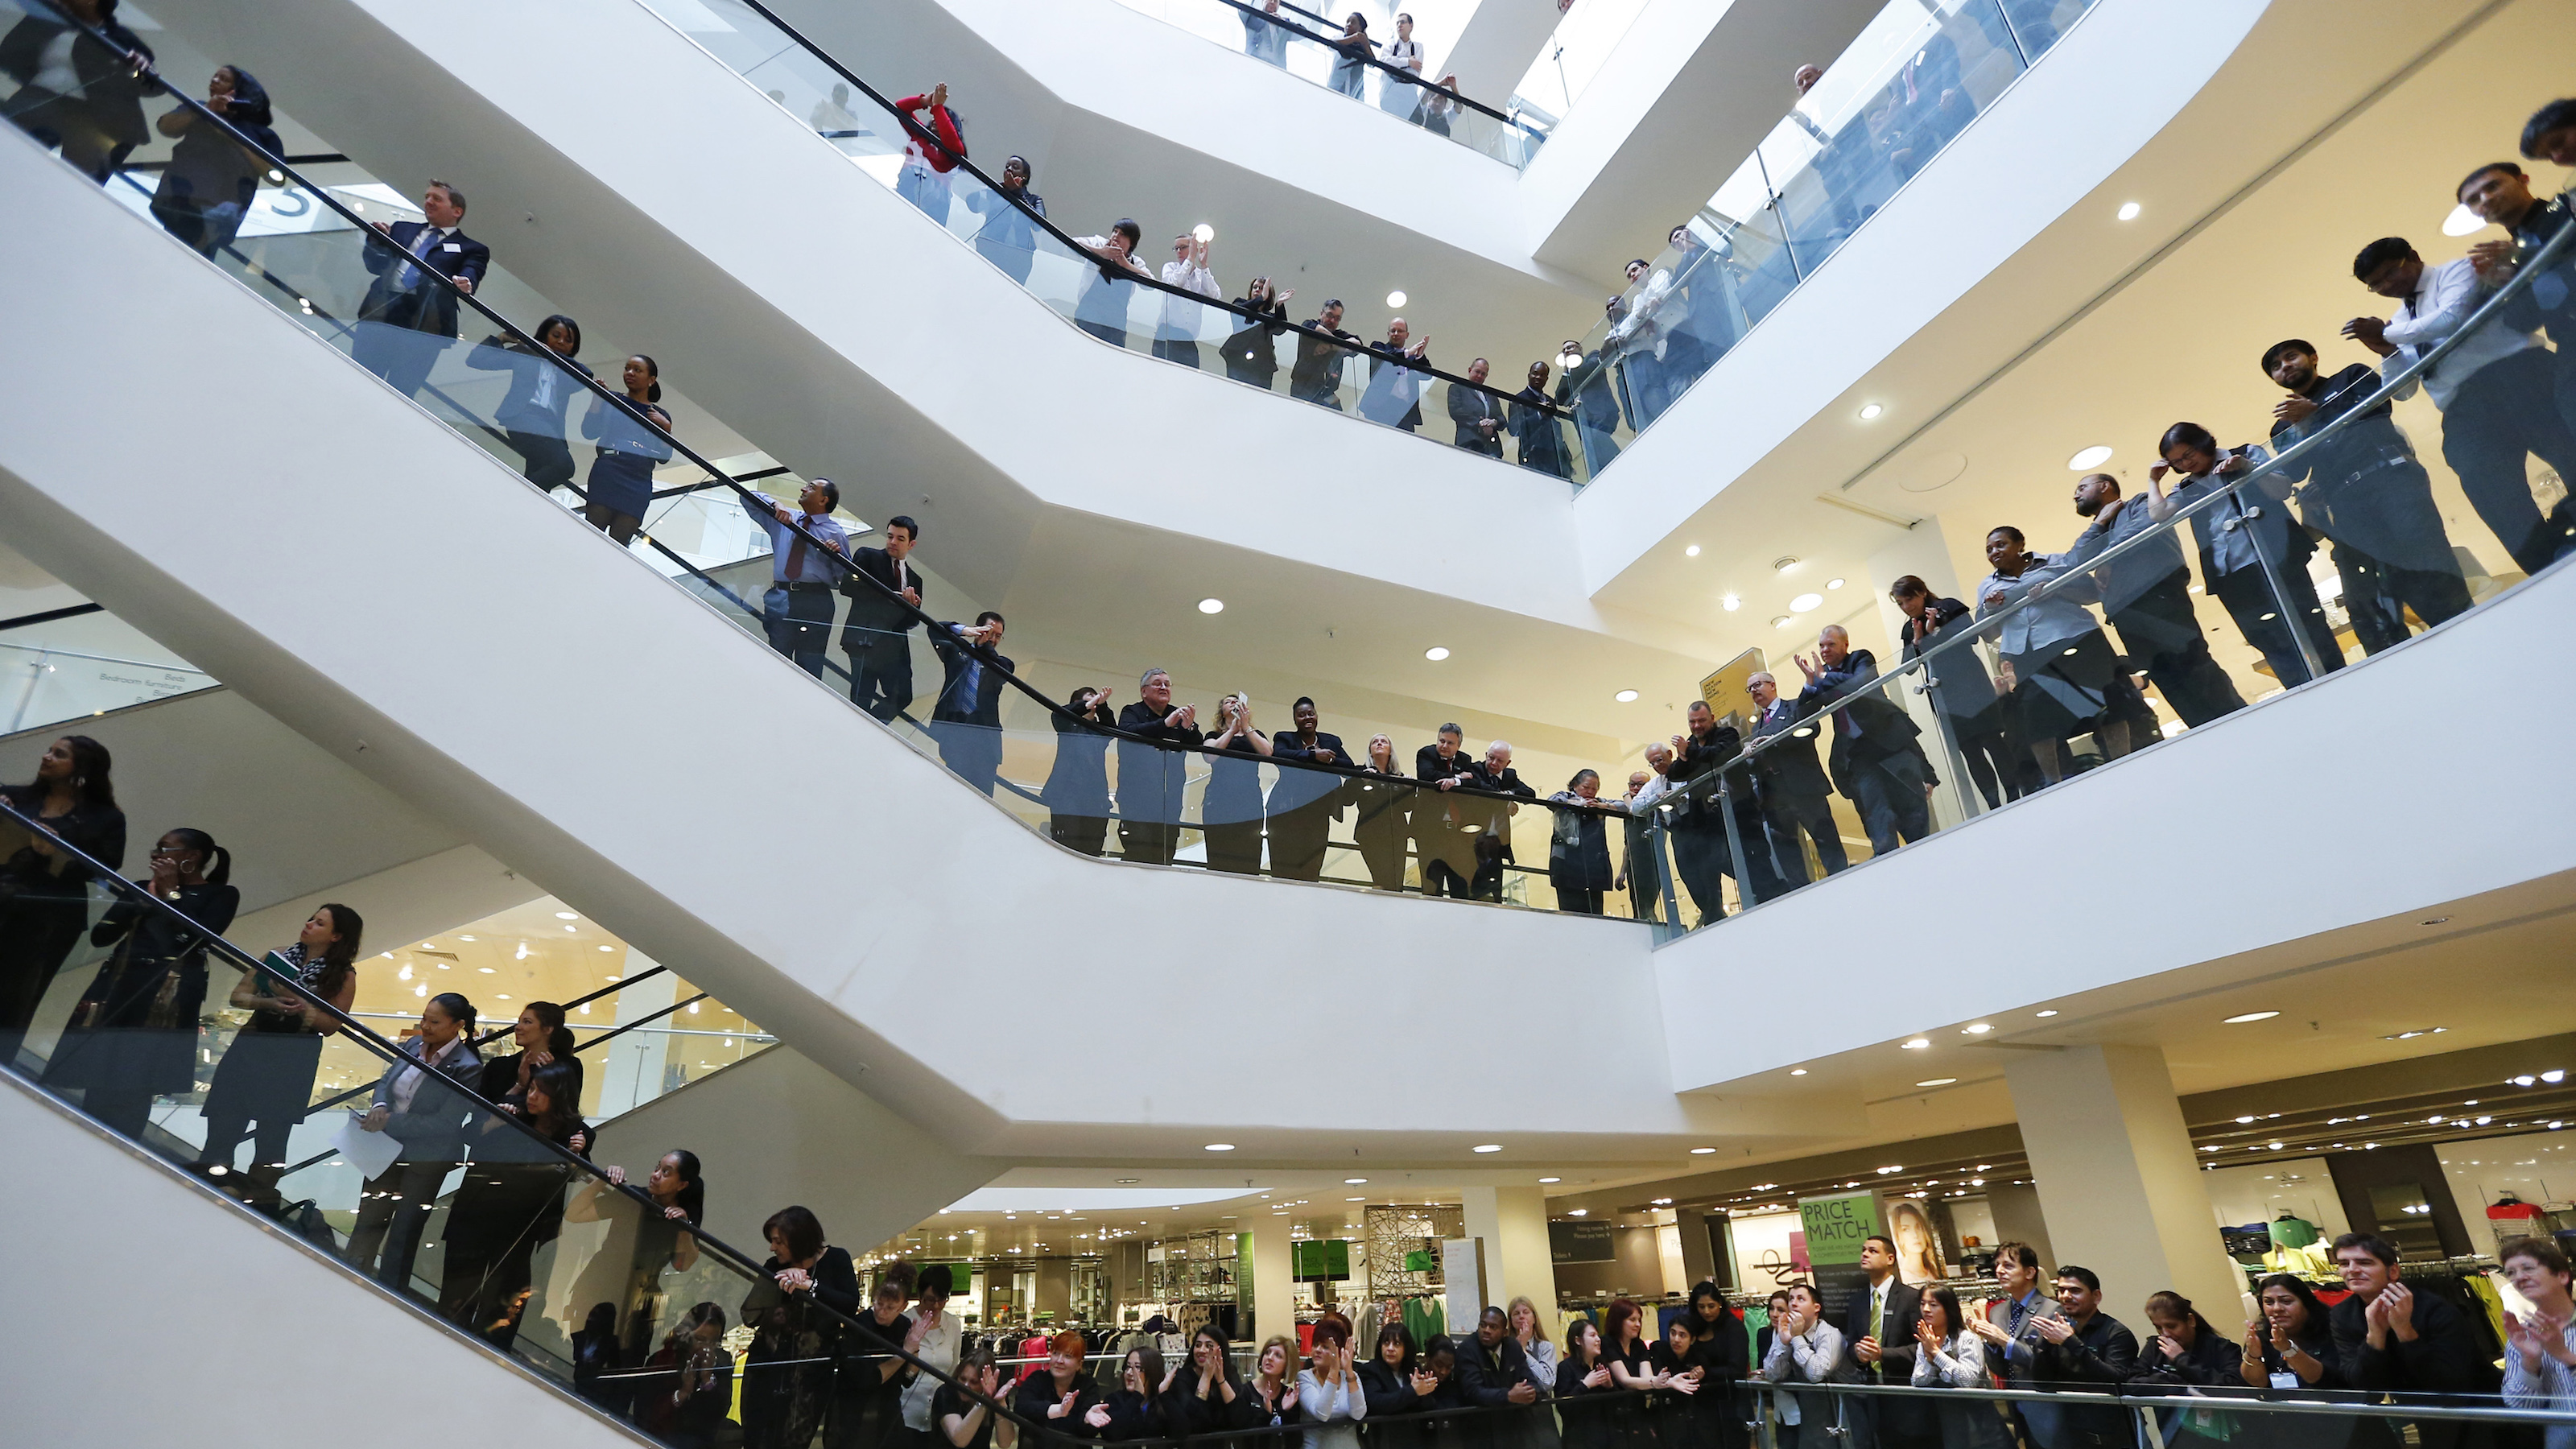 """Workers, known as partners at the John Lewis Partnership, celebrate after the announcement of their annual profit related bonus, at their flagship Oxford Street store in central London March 7, 2013. British retailer, the John Lewis Partnership, said on Thursday it would pay its staff a bonus of 17 percent of salary after it outperformed rivals with a 16 percent rise in annual profit. """"We expect our sales growth to continue this year, albeit less strongly than in 2012-13, and we are planning a significant step up in total investment, with a particular focus on our supply chain, technology and systems,"""" Chairman Charlie Mayfield said. REUTERS/Andrew Winning (BRITAIN - Tags: BUSINESS SOCIETY EMPLOYMENT) - RTR3EOLQ"""